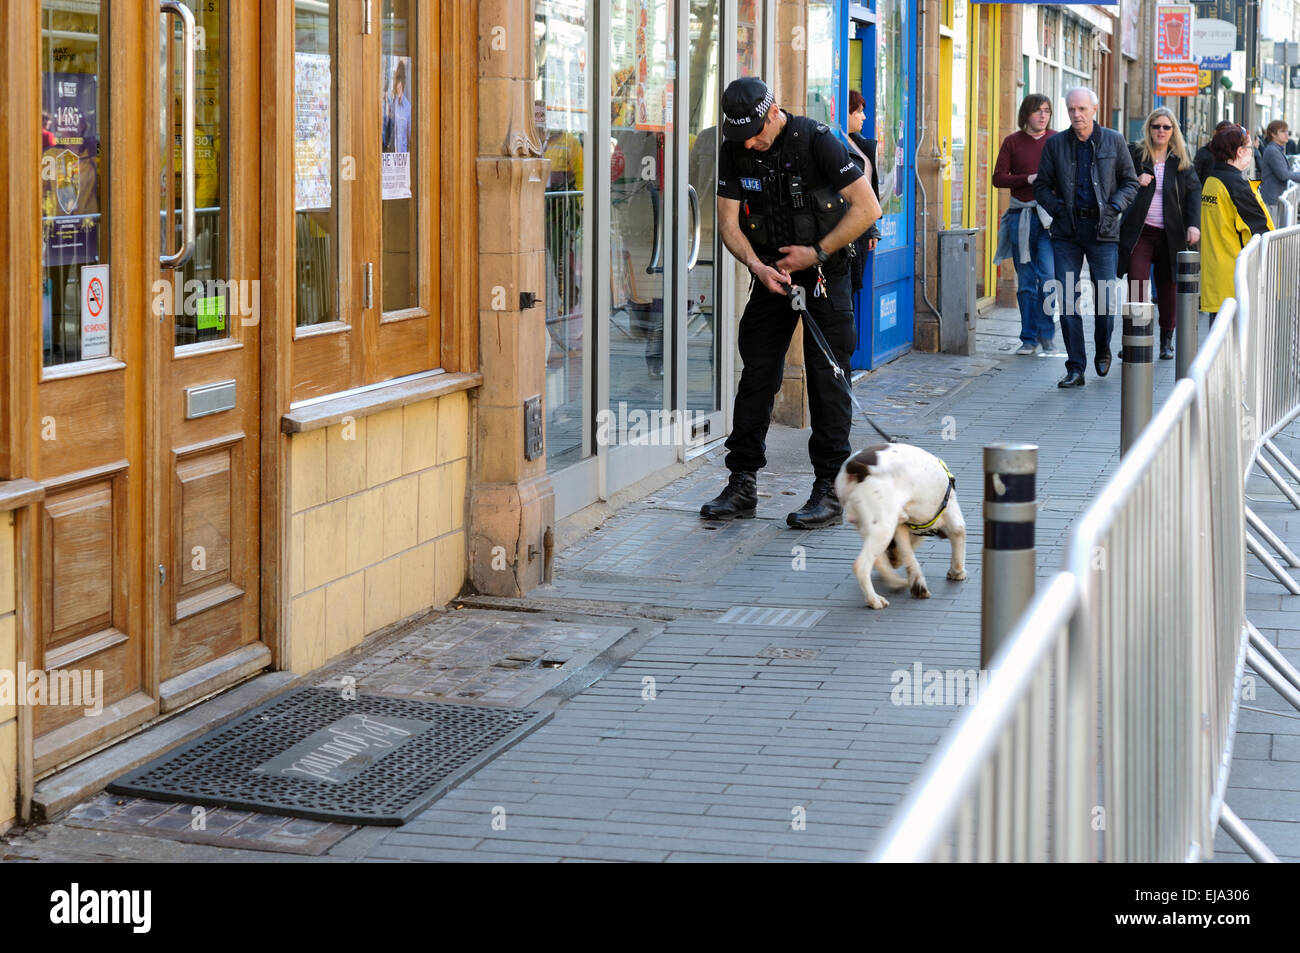 Police With Sniffer Dogs Leicester City Center - Stock Image